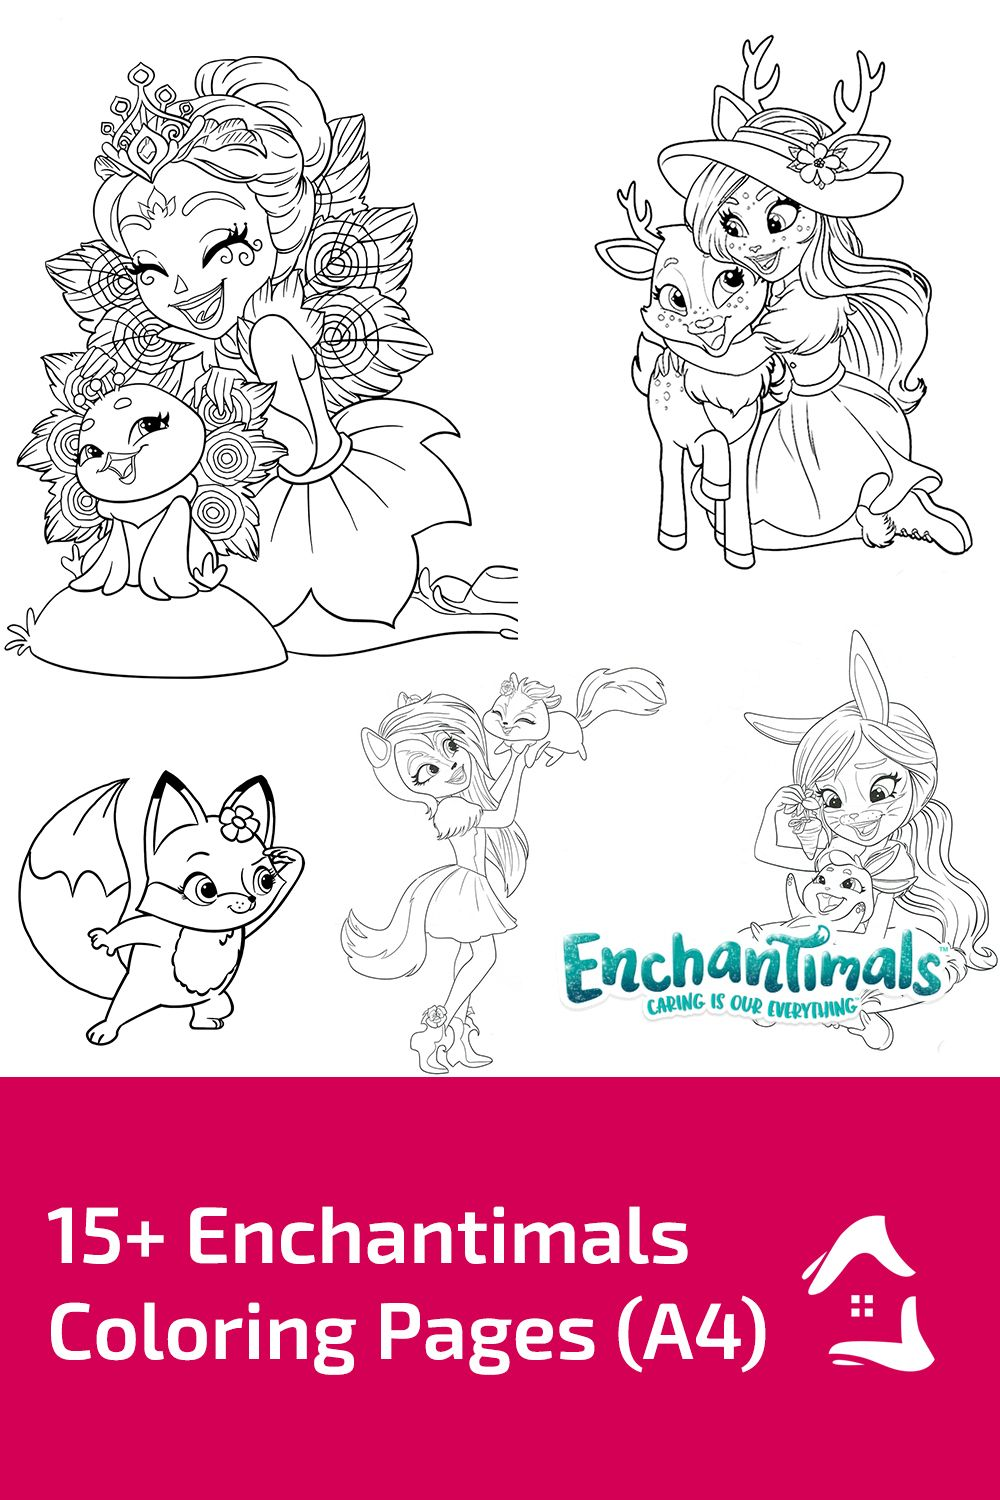 15 Pretty Images Of Enchantimals Coloring Pages Coloring Pages Free Printable Coloring Pages Free Printable Coloring